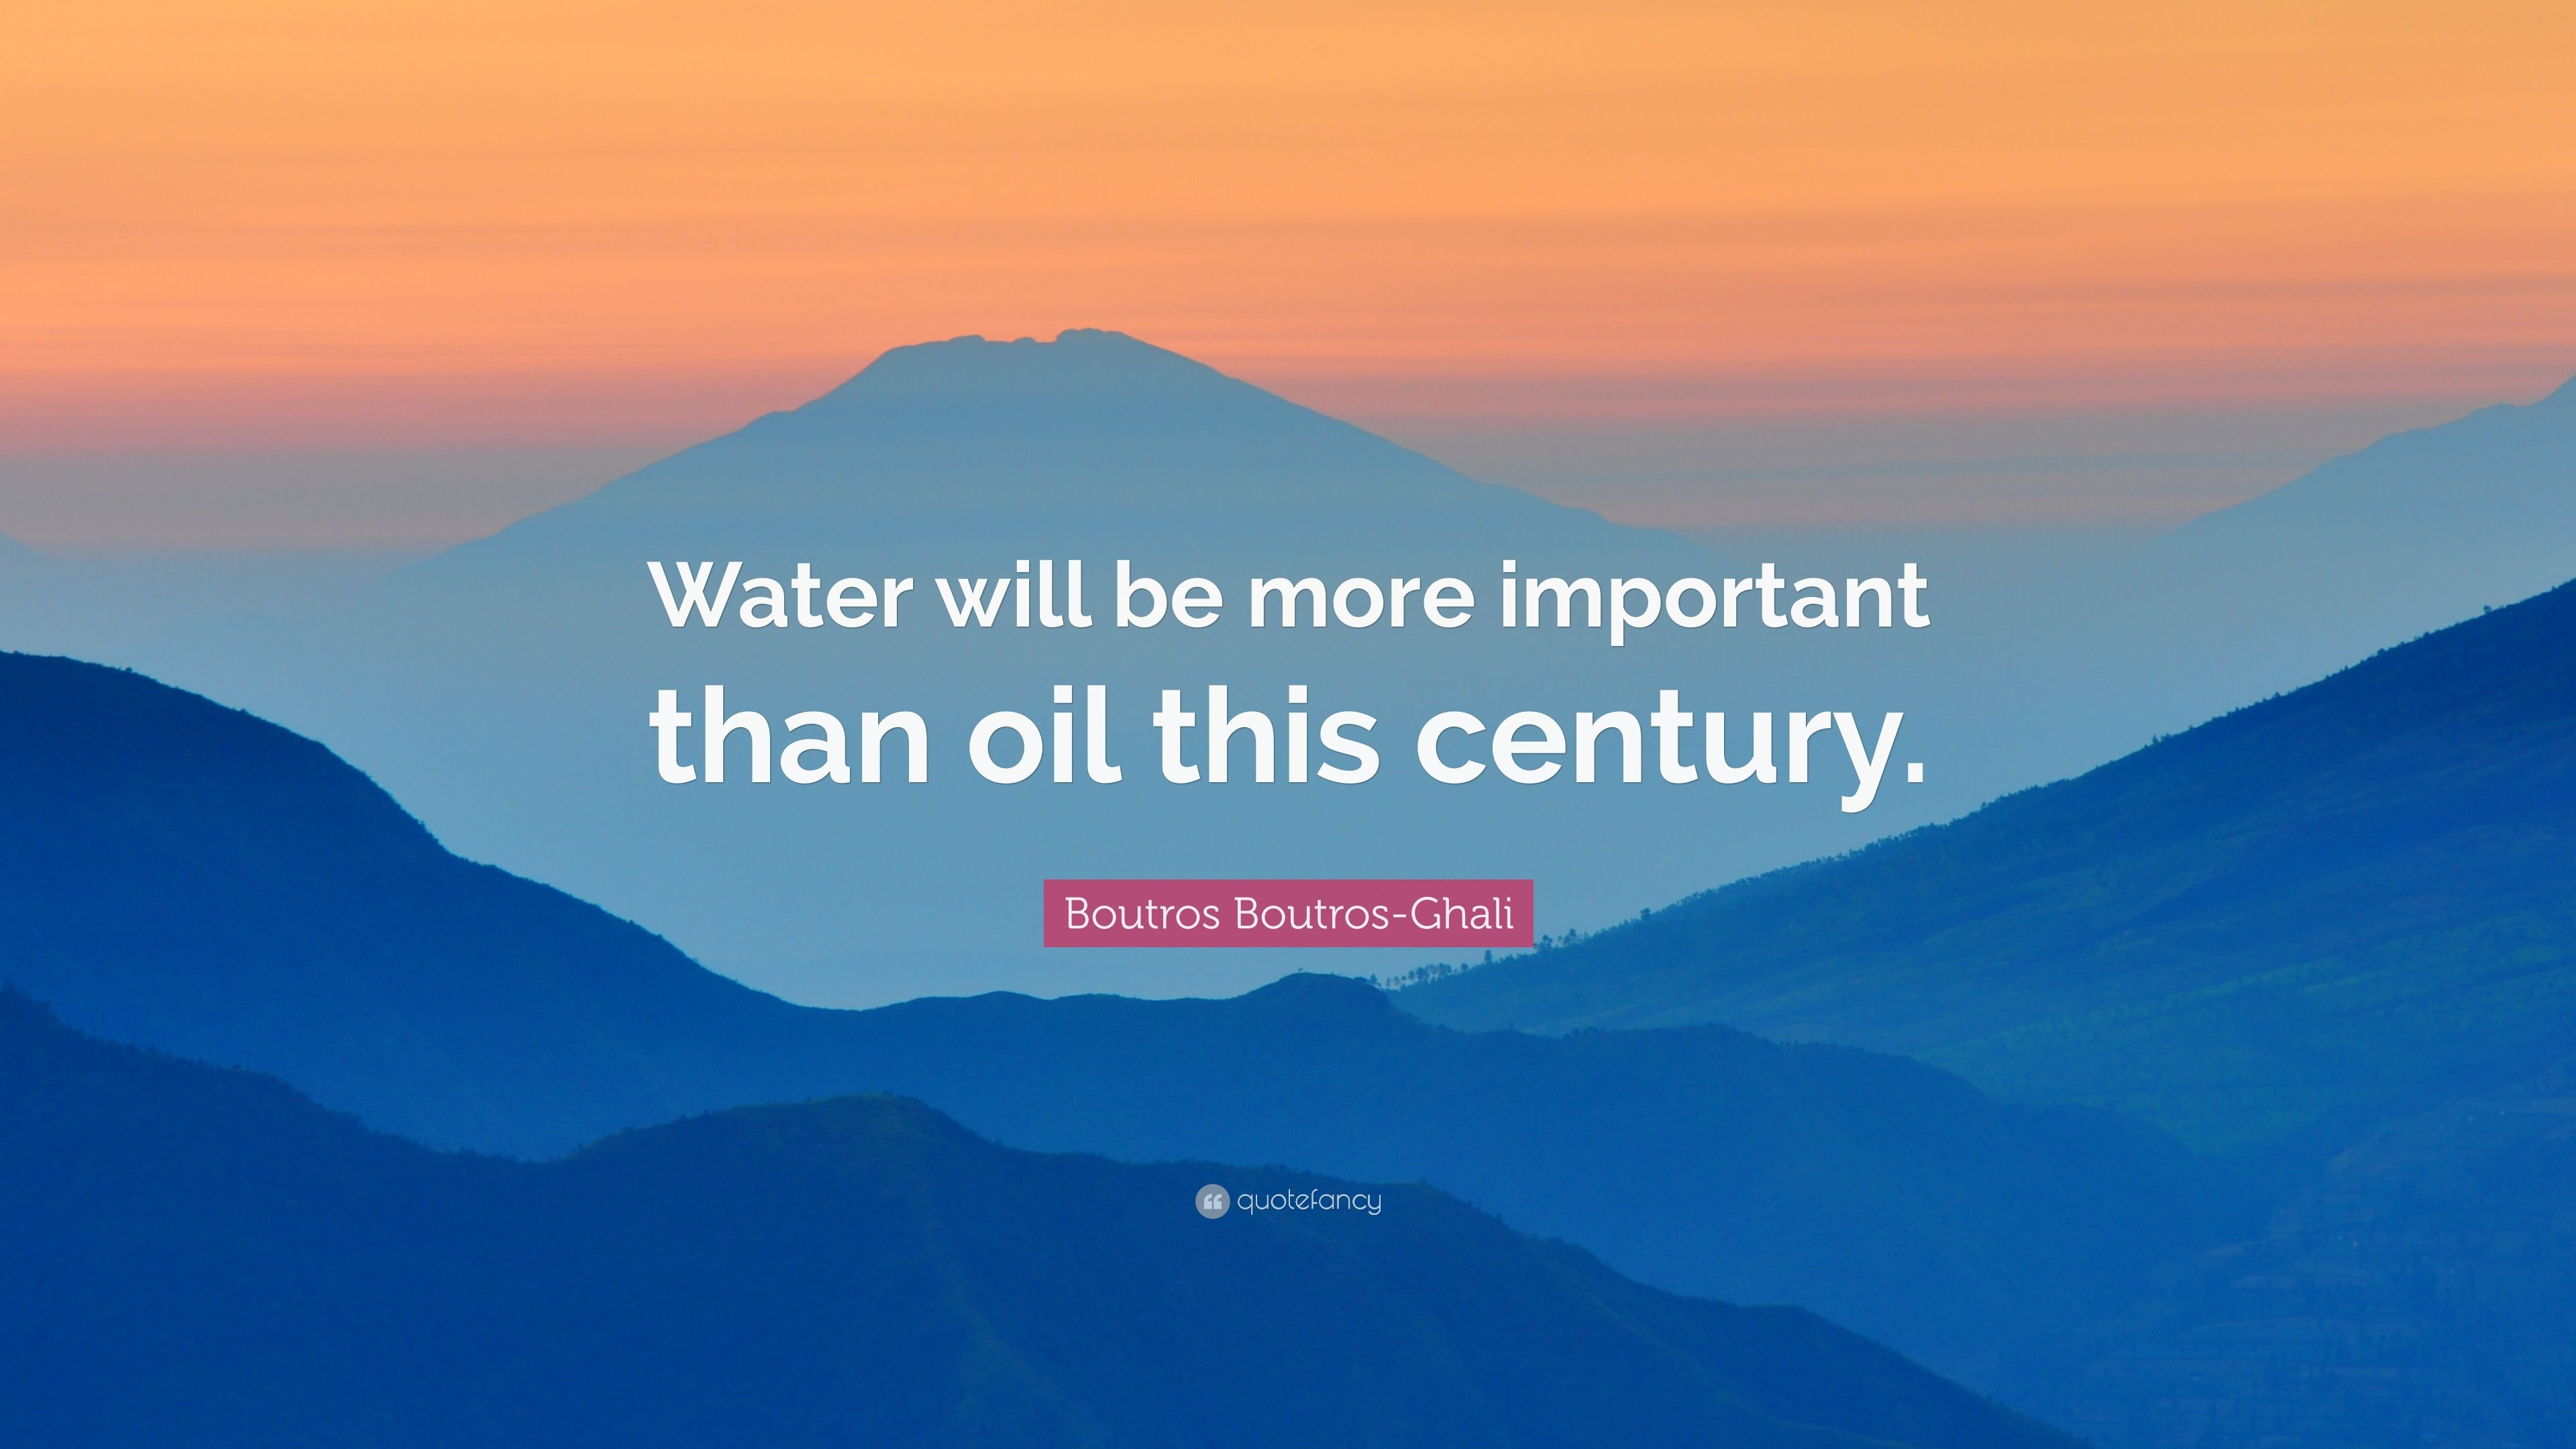 why is water more important than oil